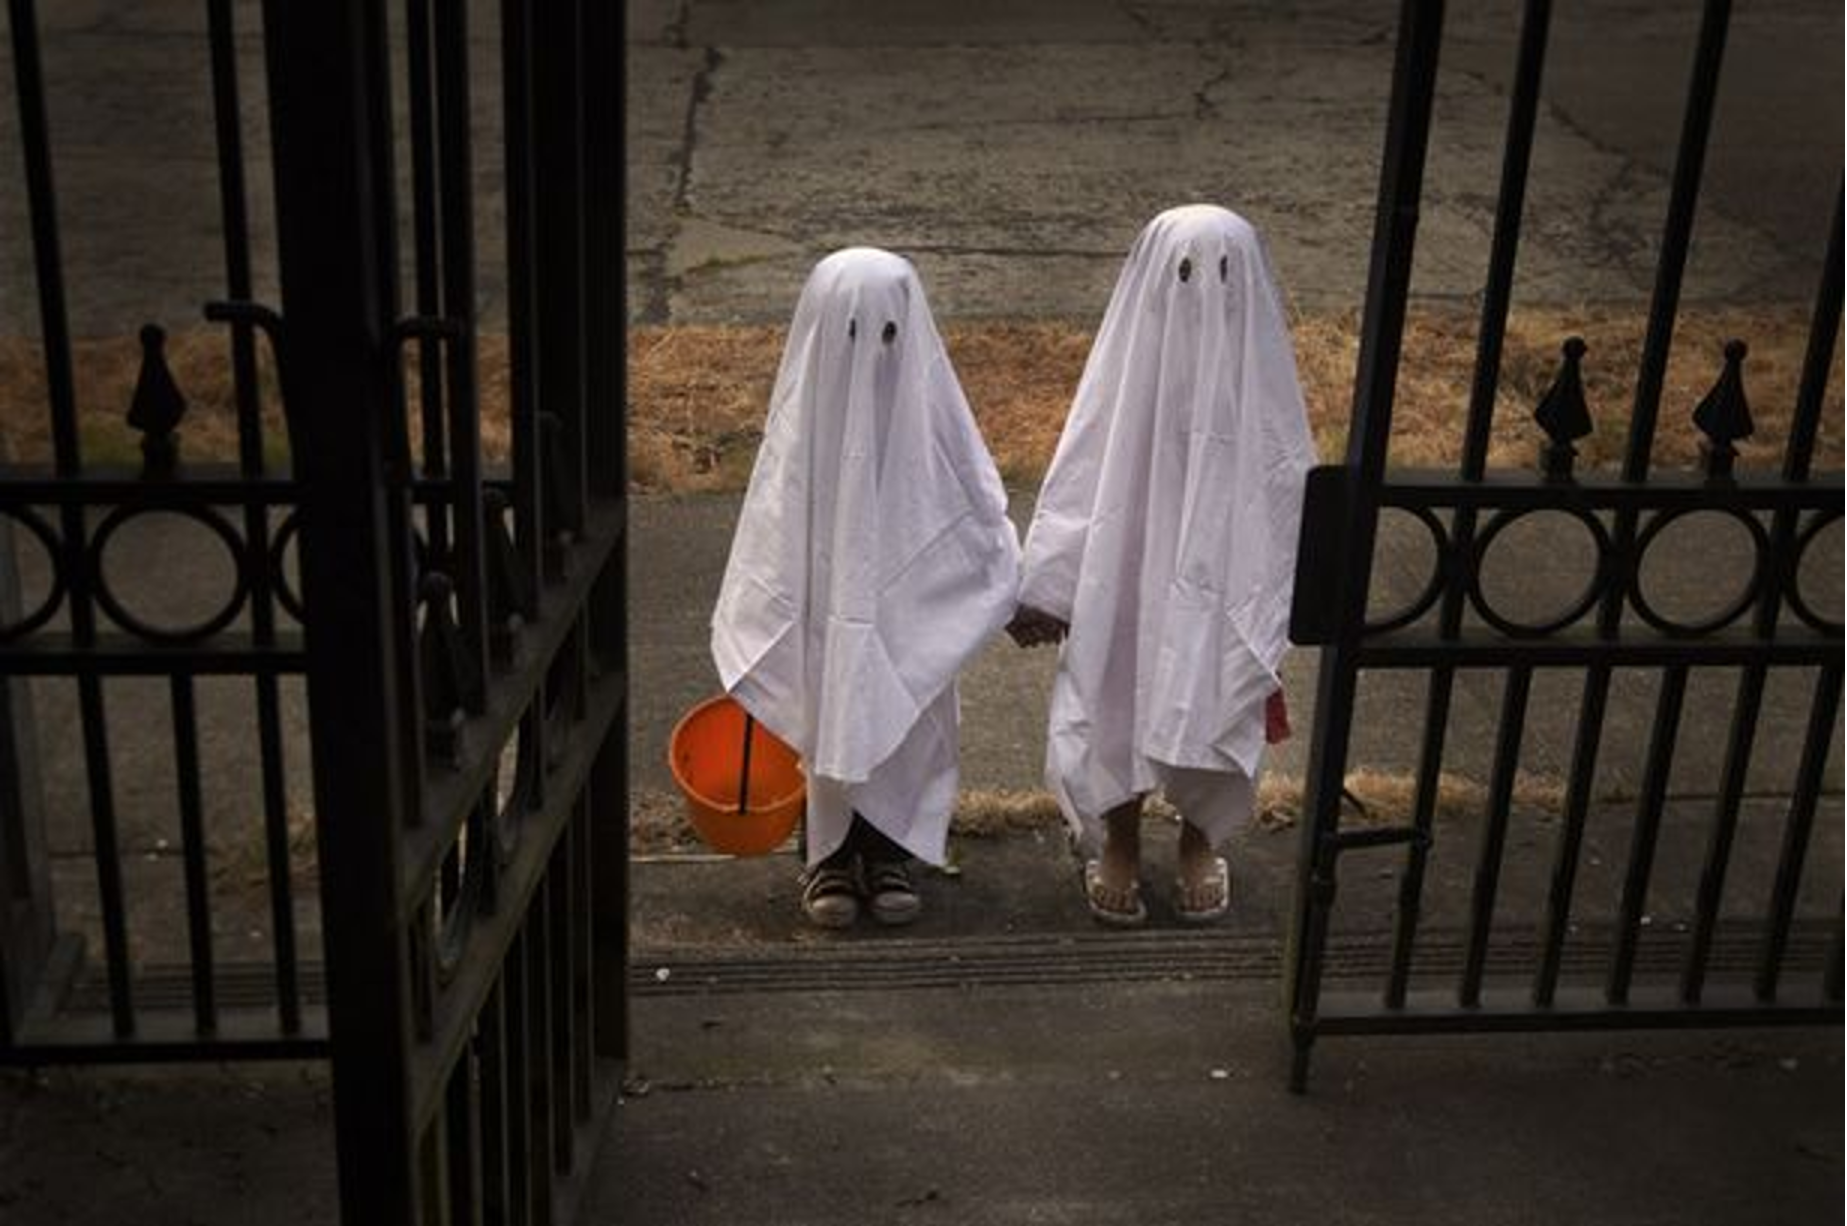 Two children dressed up as ghosts trick-or-treating on Halloween.